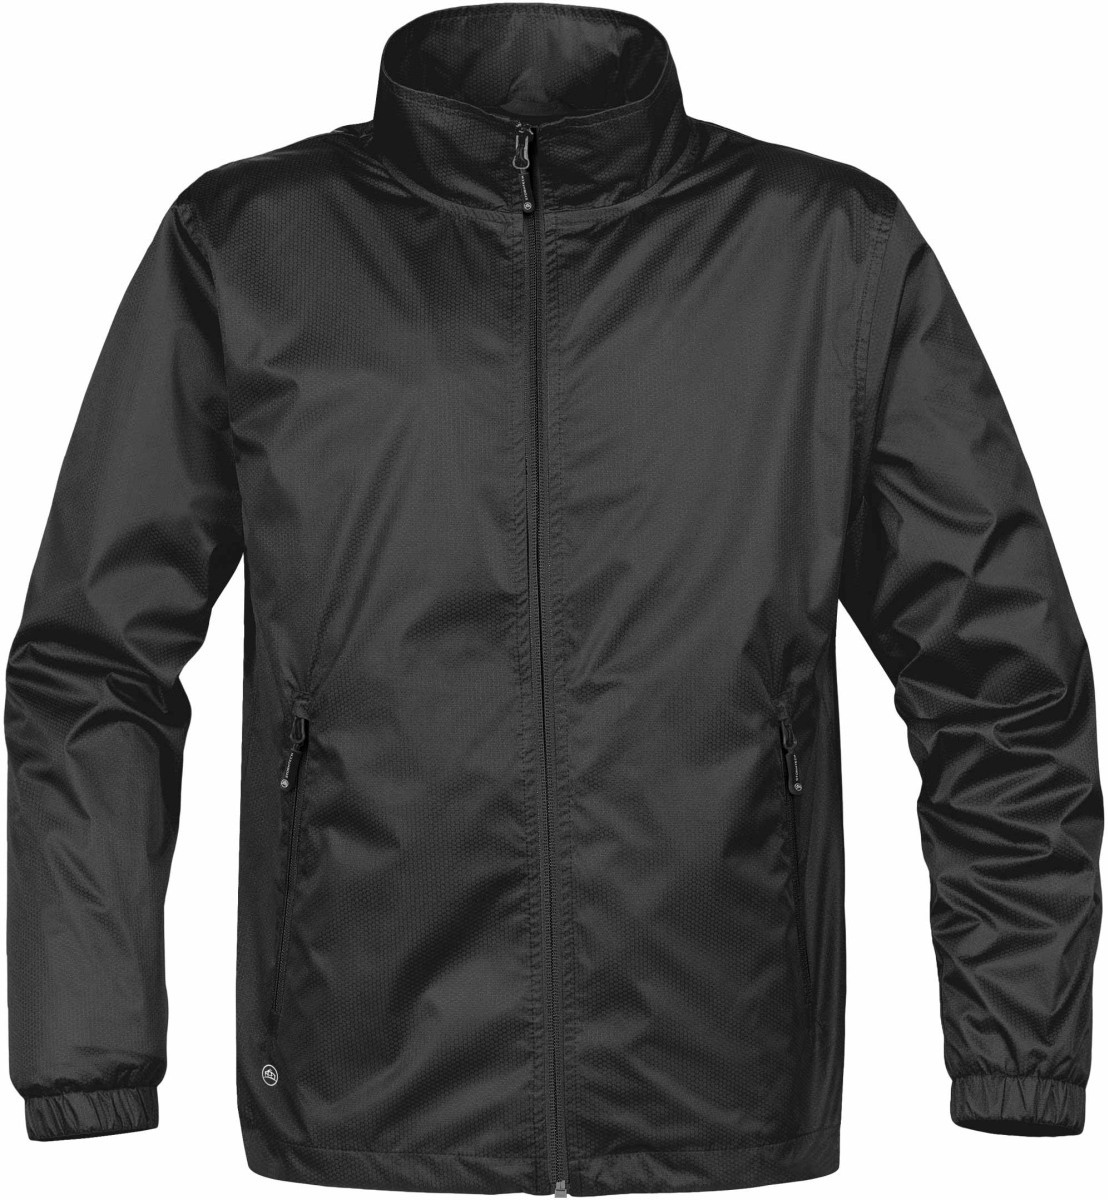 Men's Axis Shell-StormTech